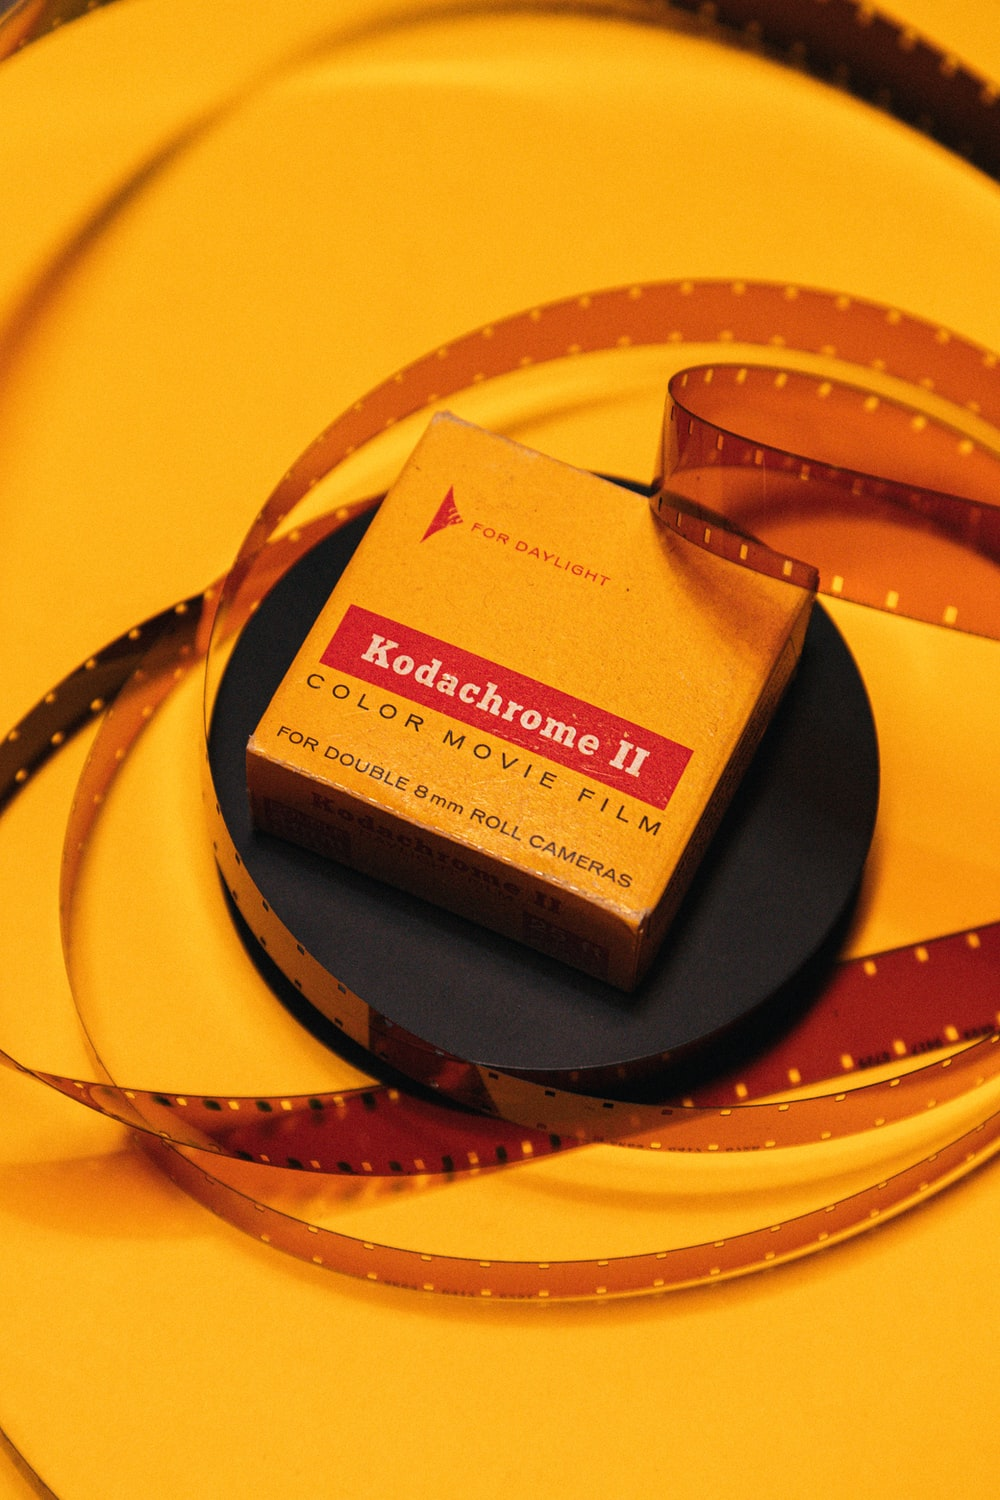 Kodachrome 2 color movie film box